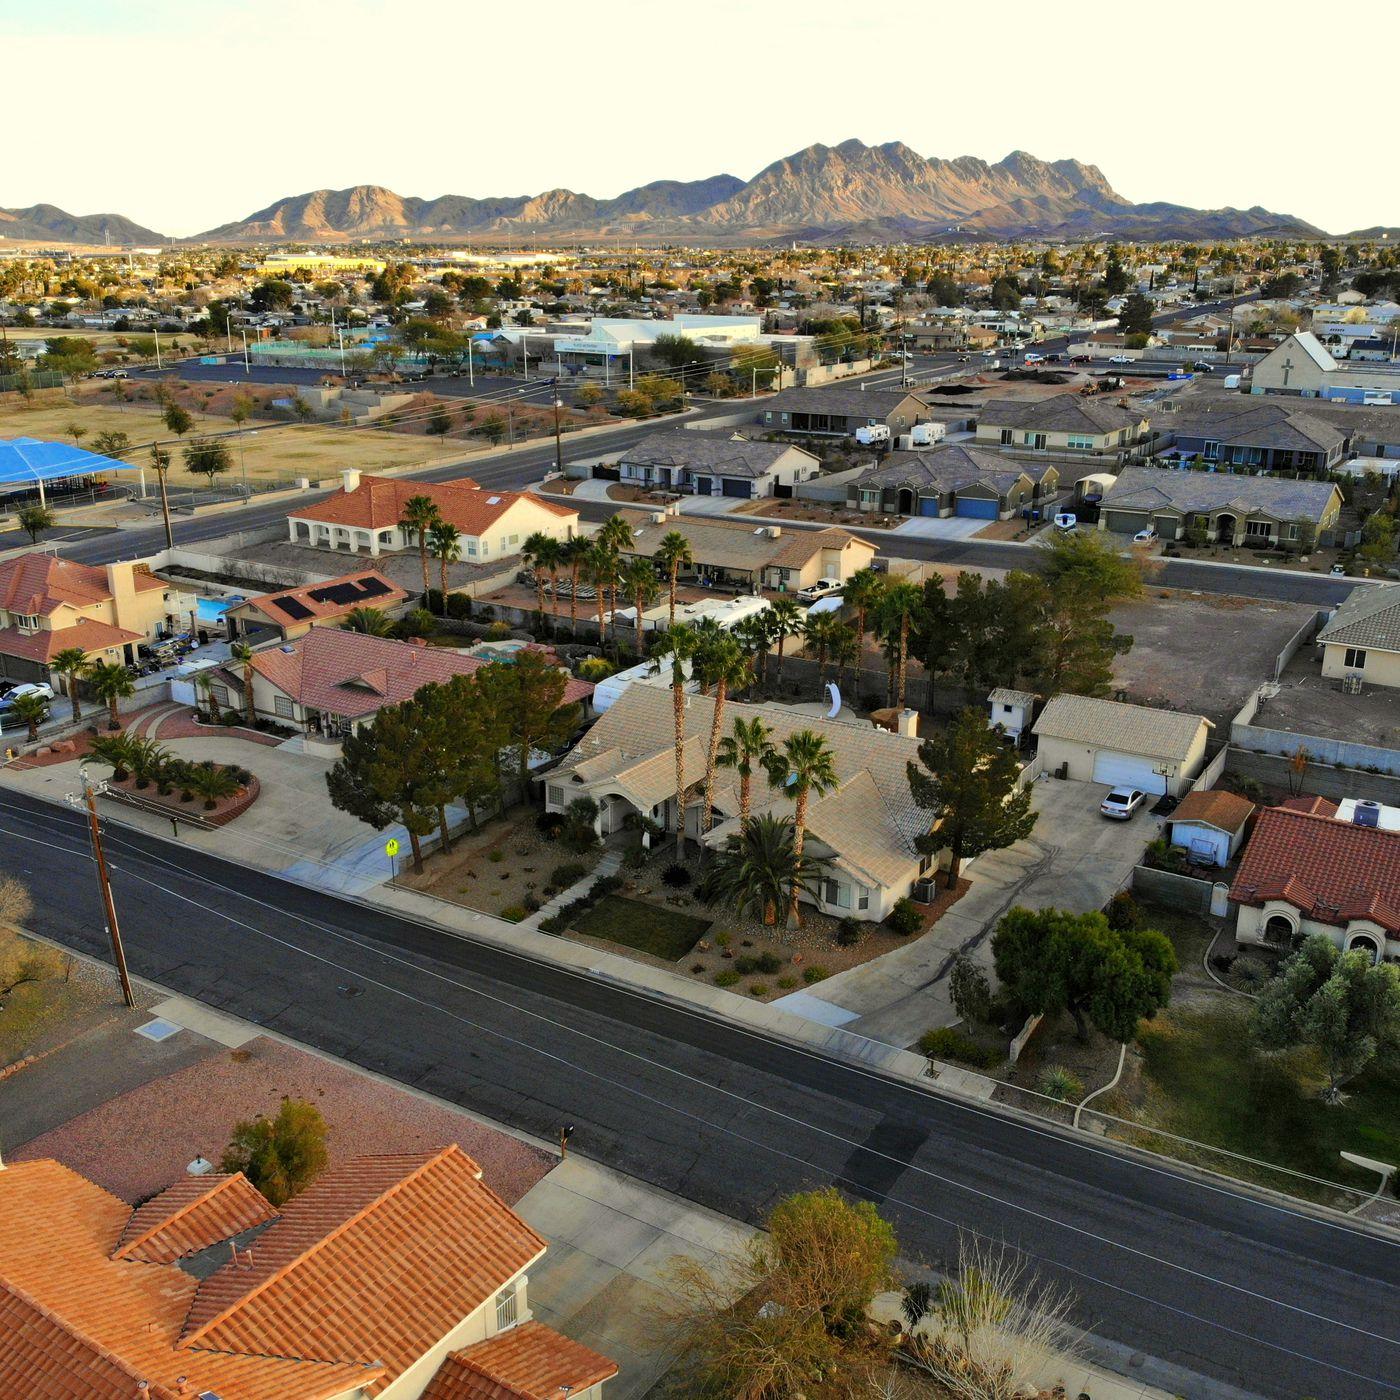 As Nevada booms, Henderson and Reno grapple with growth limits - Curbed